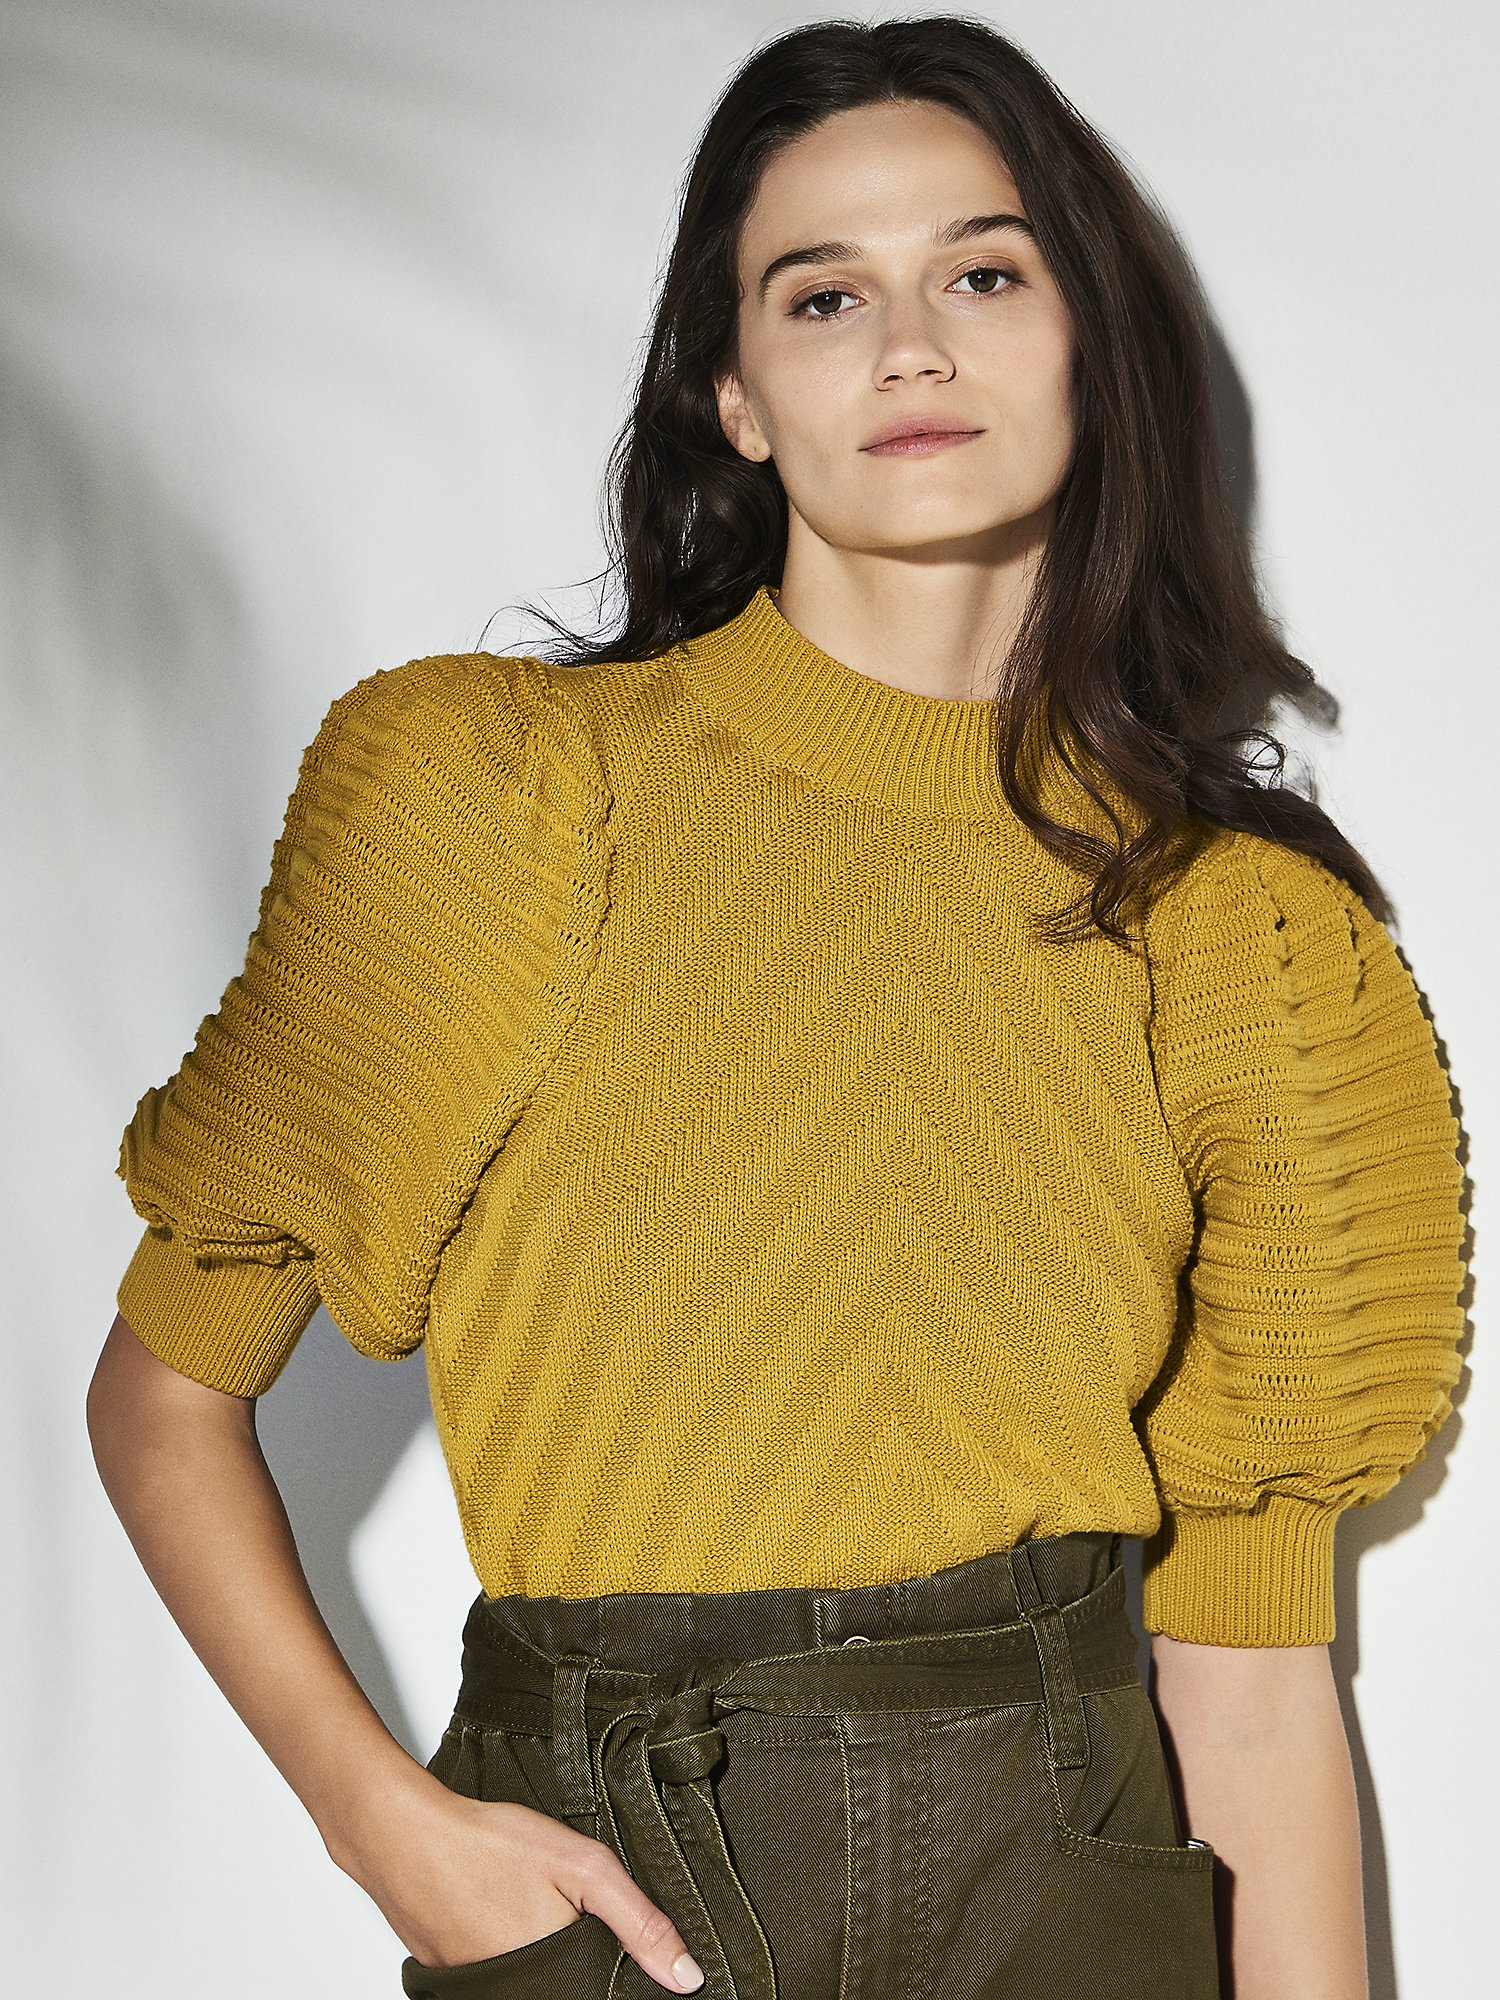 Vintage Tops & Retro Shirts, Halter Tops, Blouses Womens Morningstar Sweater With Recycled Cotton in Italian Olive  Size XXLARGE by HappyxNature $61.60 AT vintagedancer.com